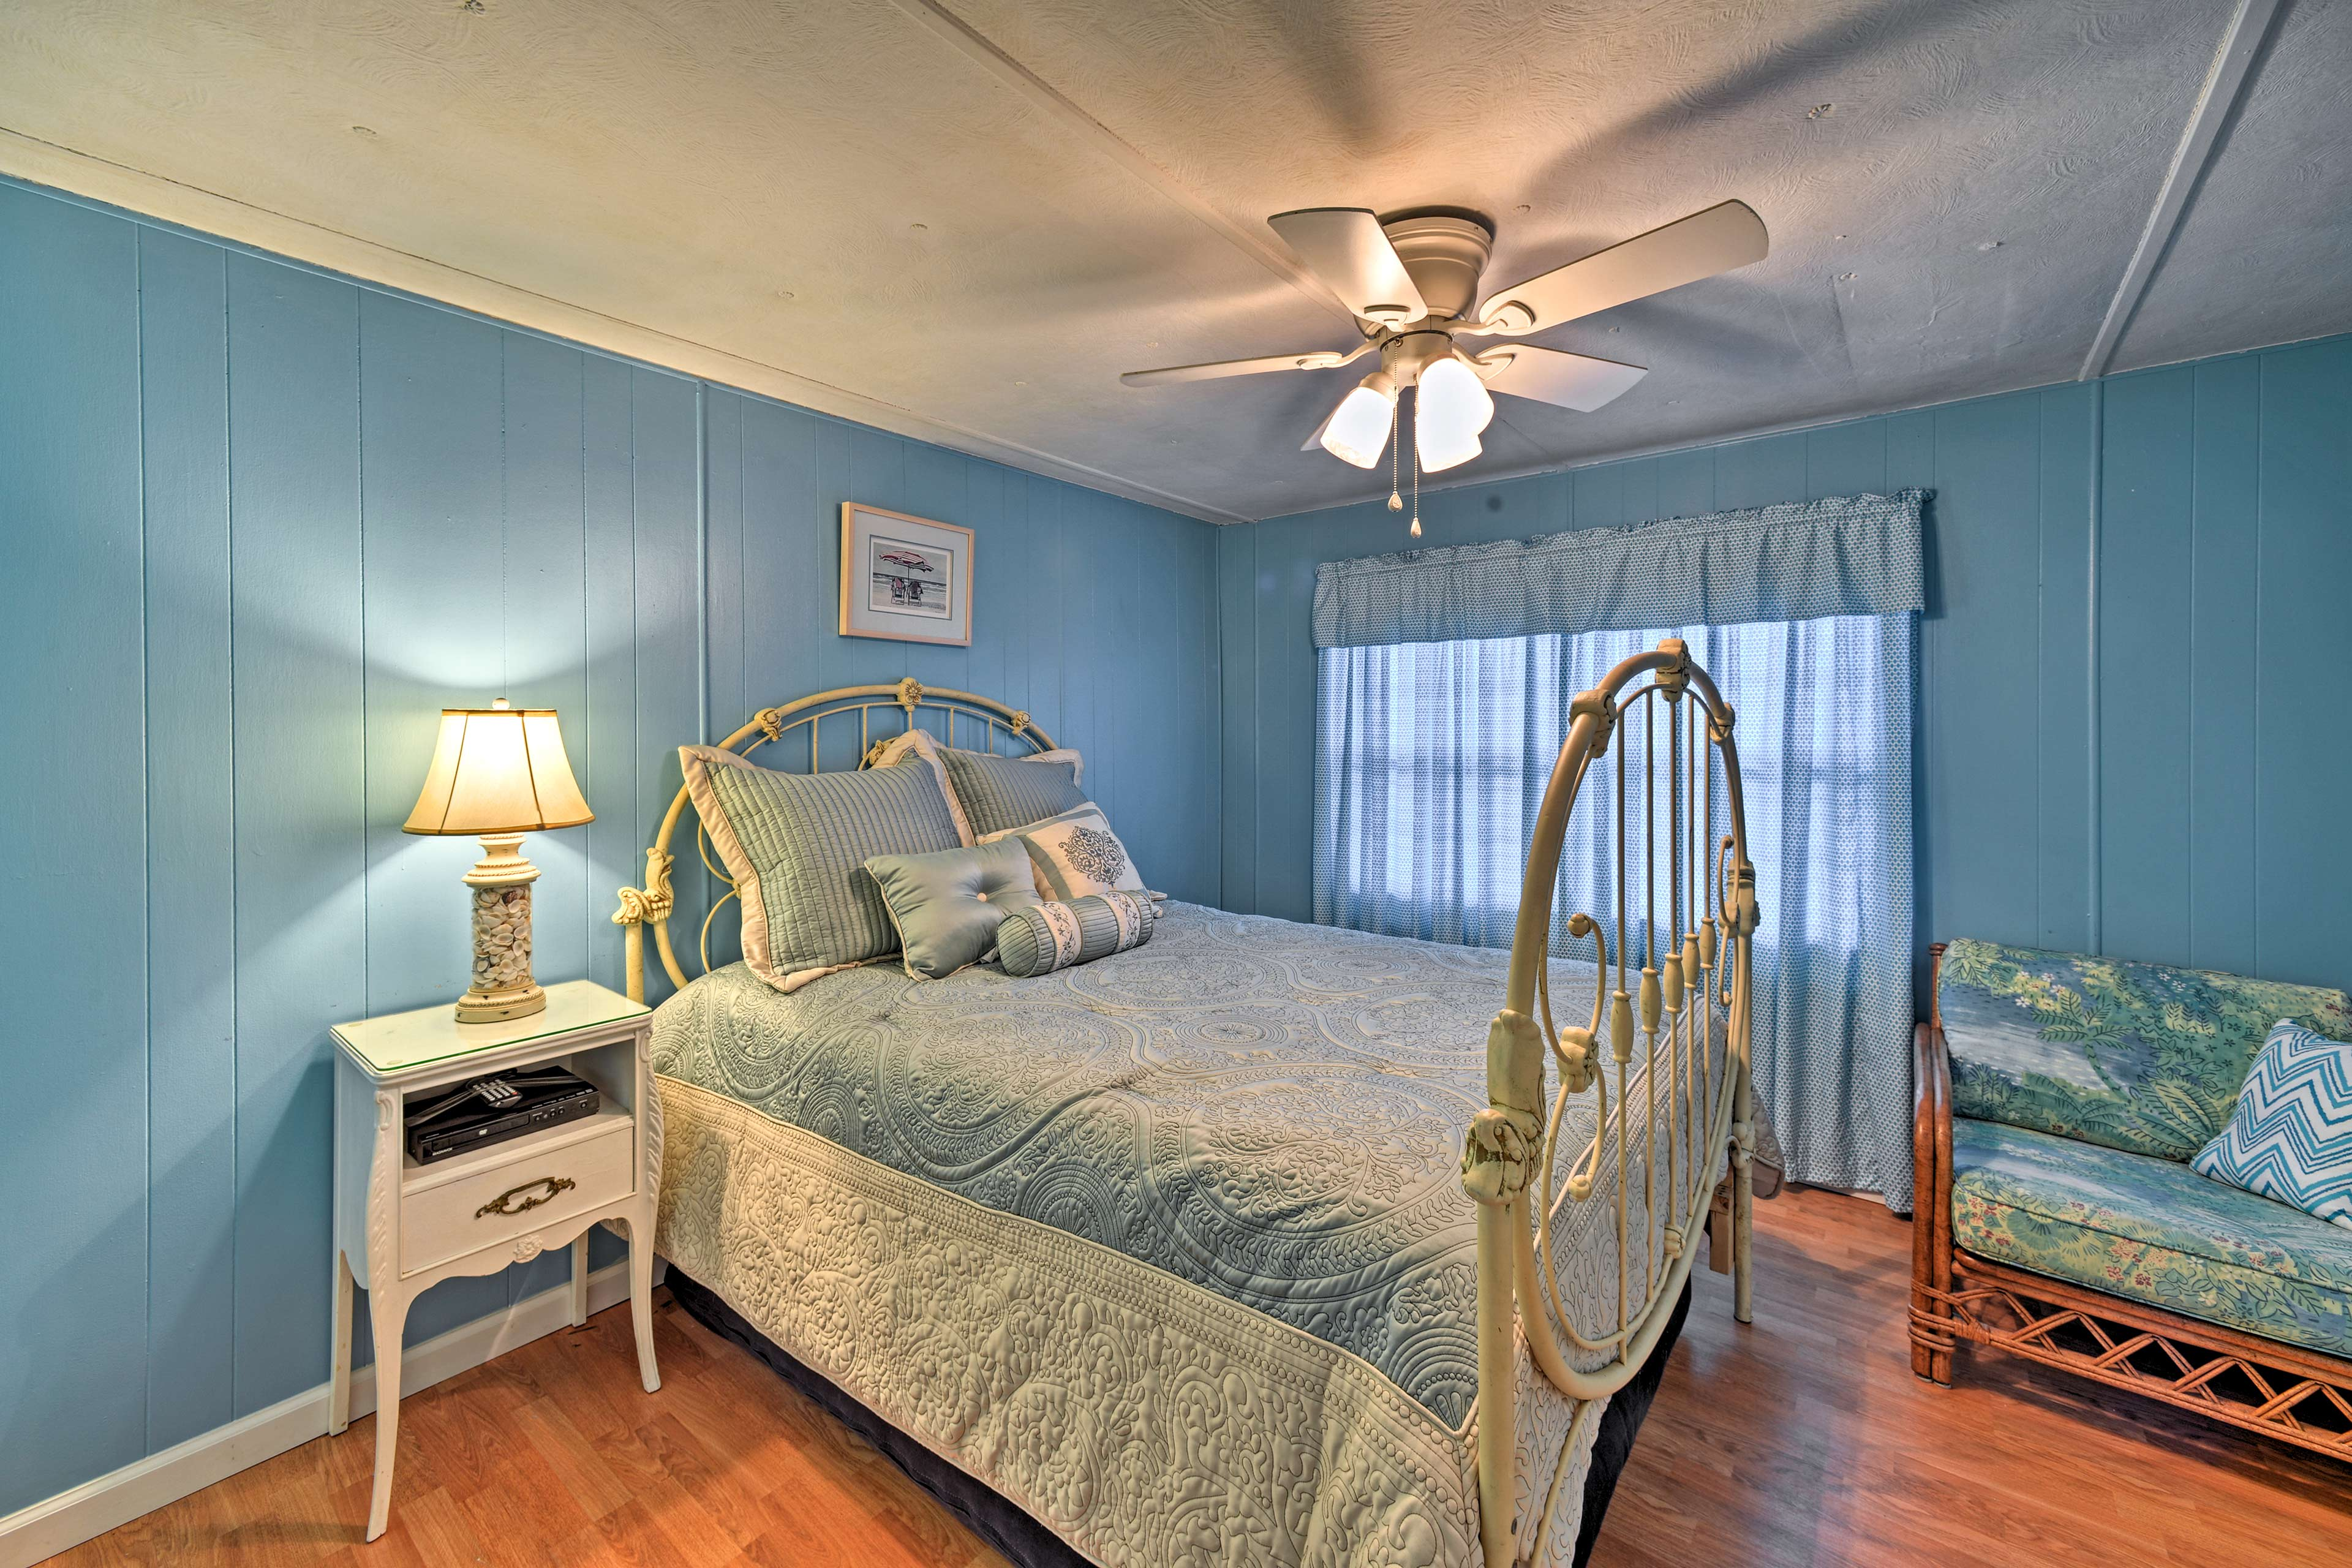 Sleep soundly in the second bedroom with a full bed.